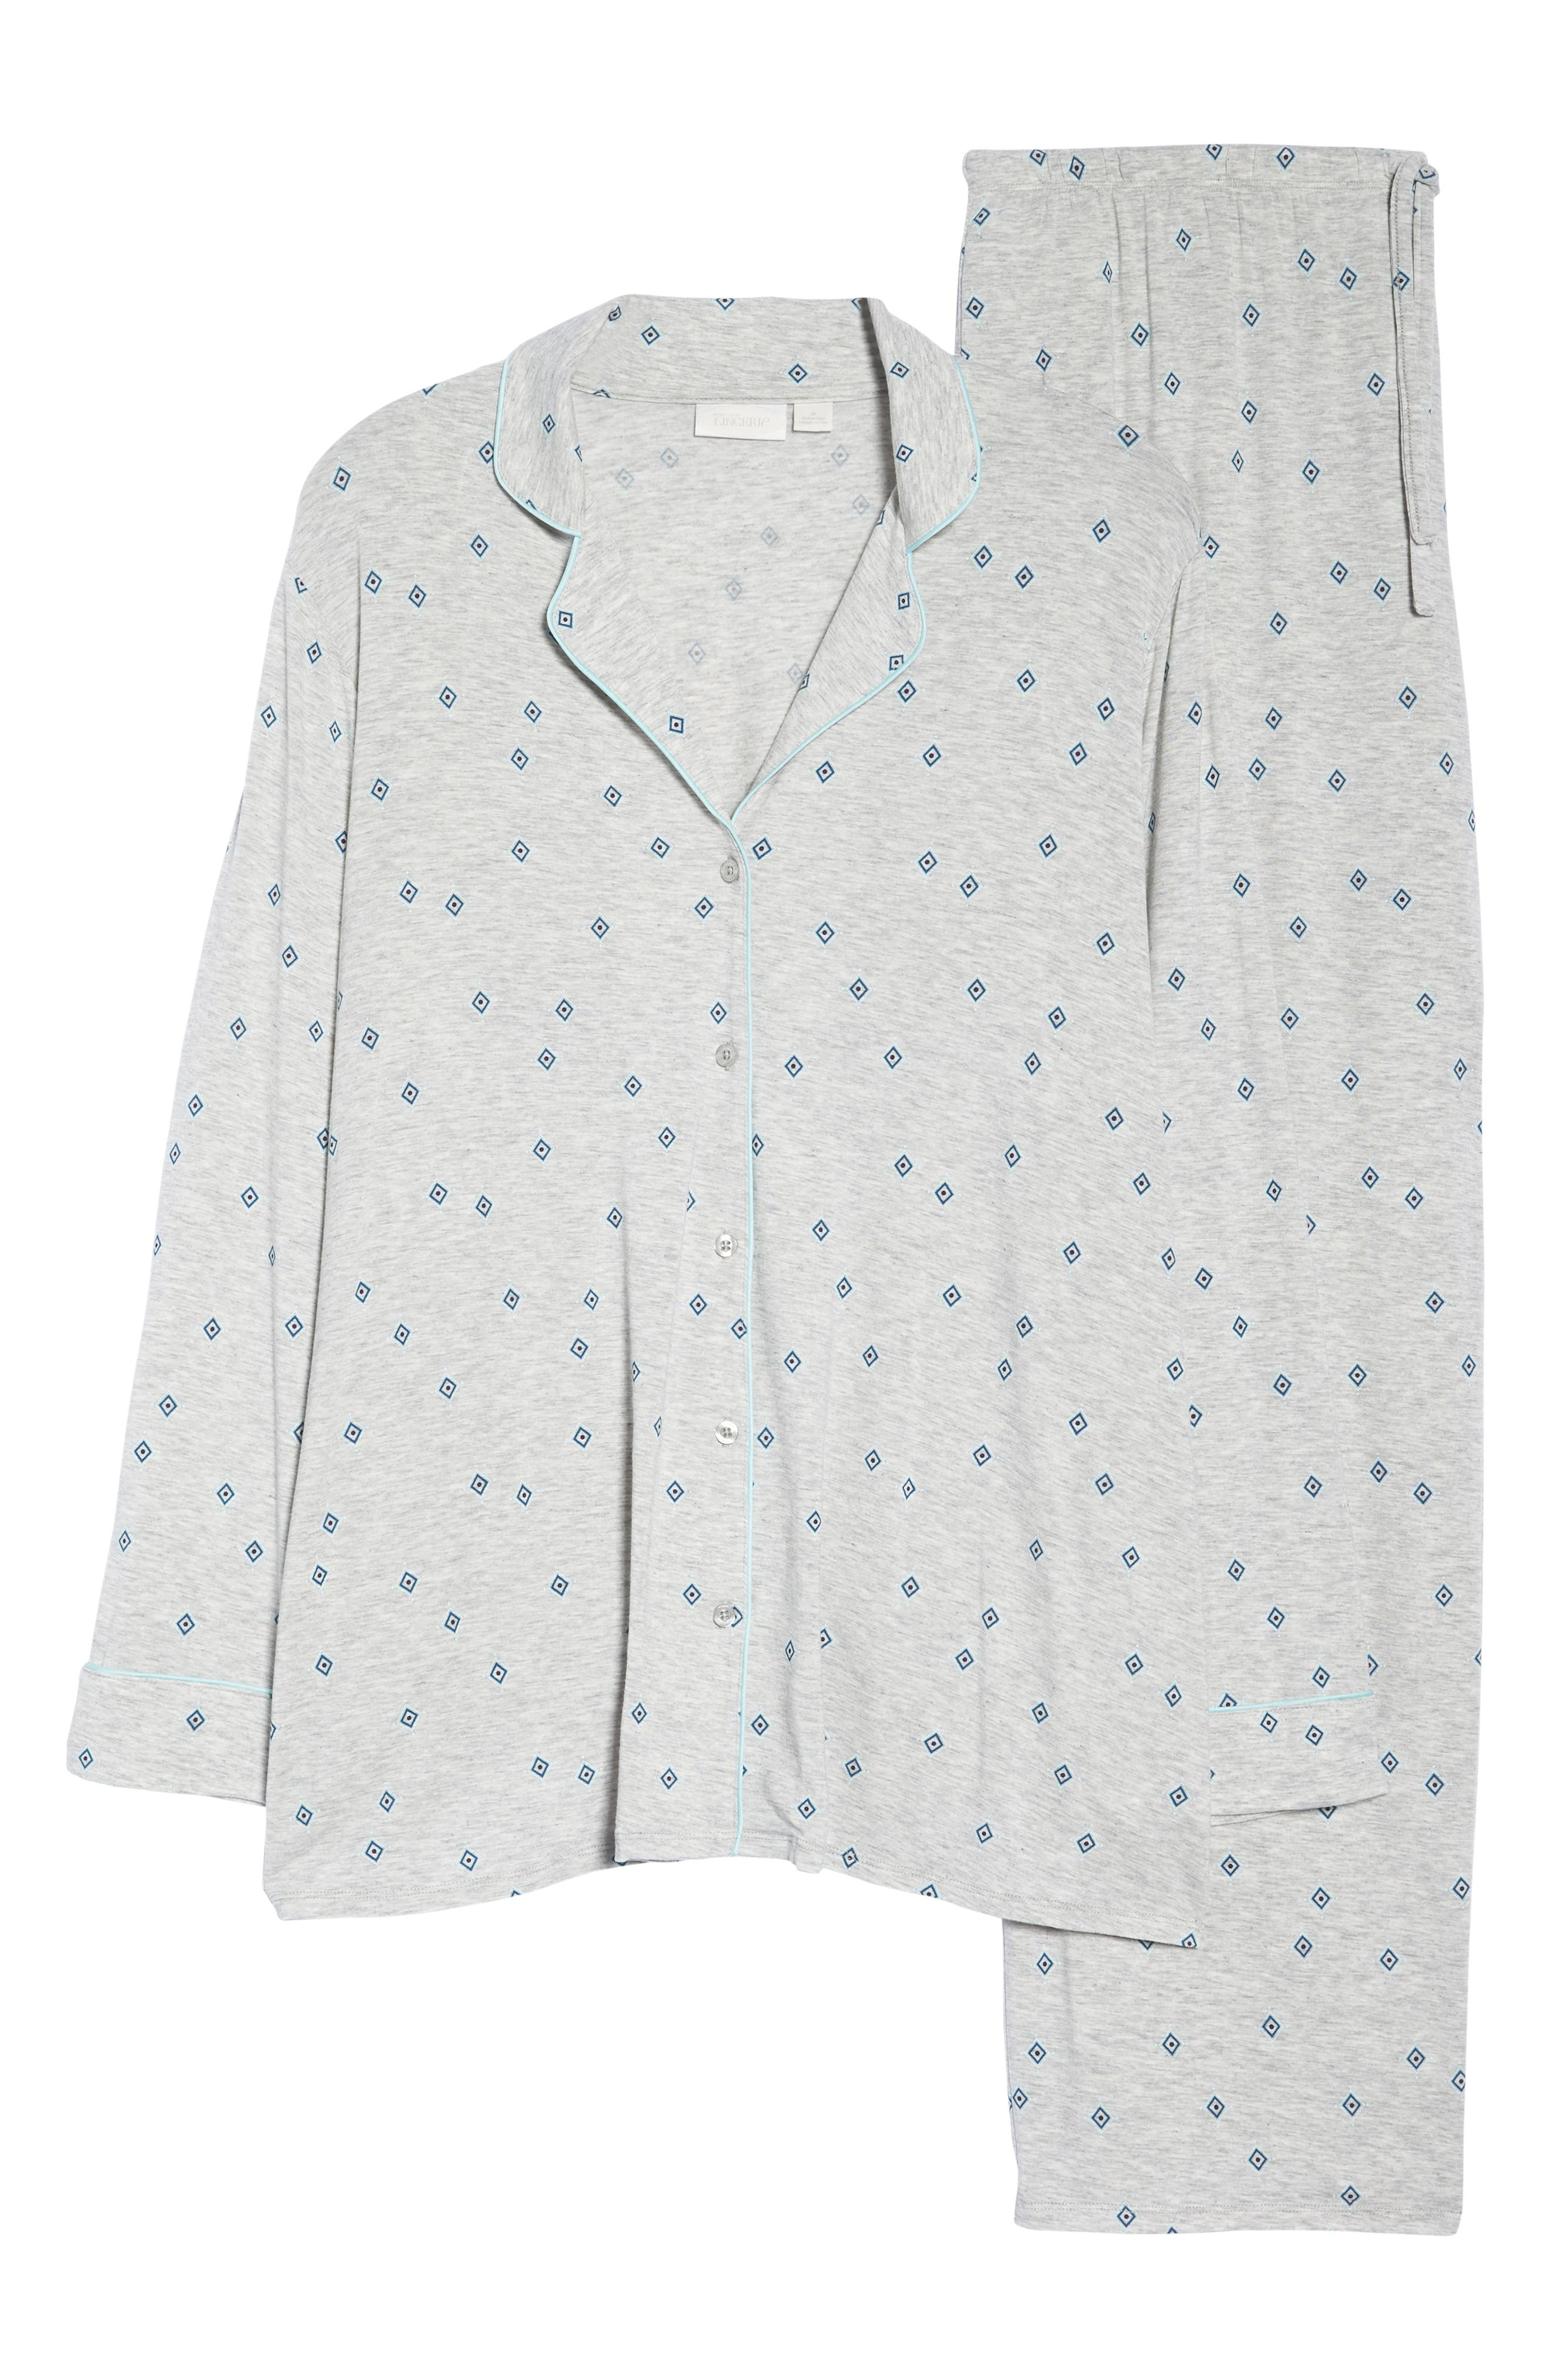 'Moonlight' Pajamas,                             Alternate thumbnail 6, color,                             GREY PEARL HTR FLIRTY FOULARD